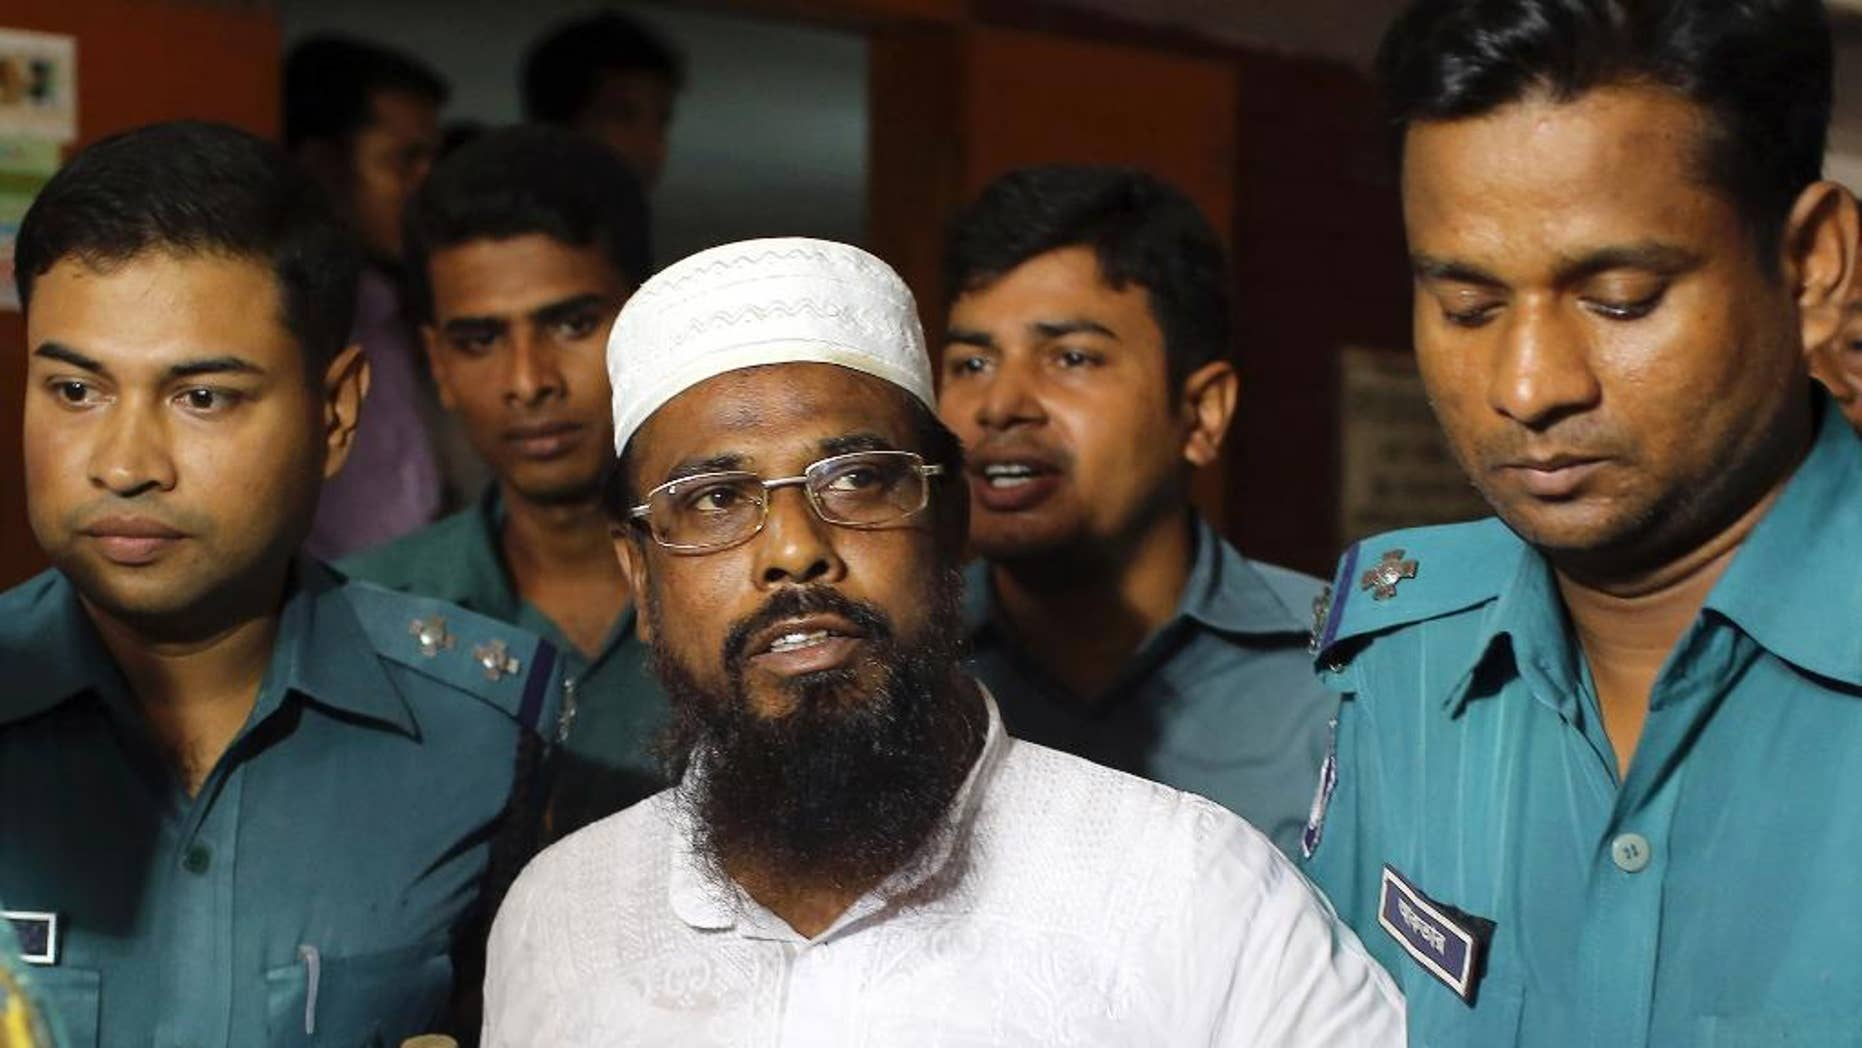 FILE - In this June 16, 2014 file photo, Mufti Abdul Hannan, center, leader of banned radical group Harkatul Jihad al Islami, stands at a court in Dhaka, Bangladesh. Bangladesh's Supreme Court on Sunday dismissed an appeal seeking the scrapping of a death sentence for the former head of a banned militant group over a 2004 grenade attack on Britain's then-envoy to Dhaka. (AP Photo/A.M. Ahad, File)